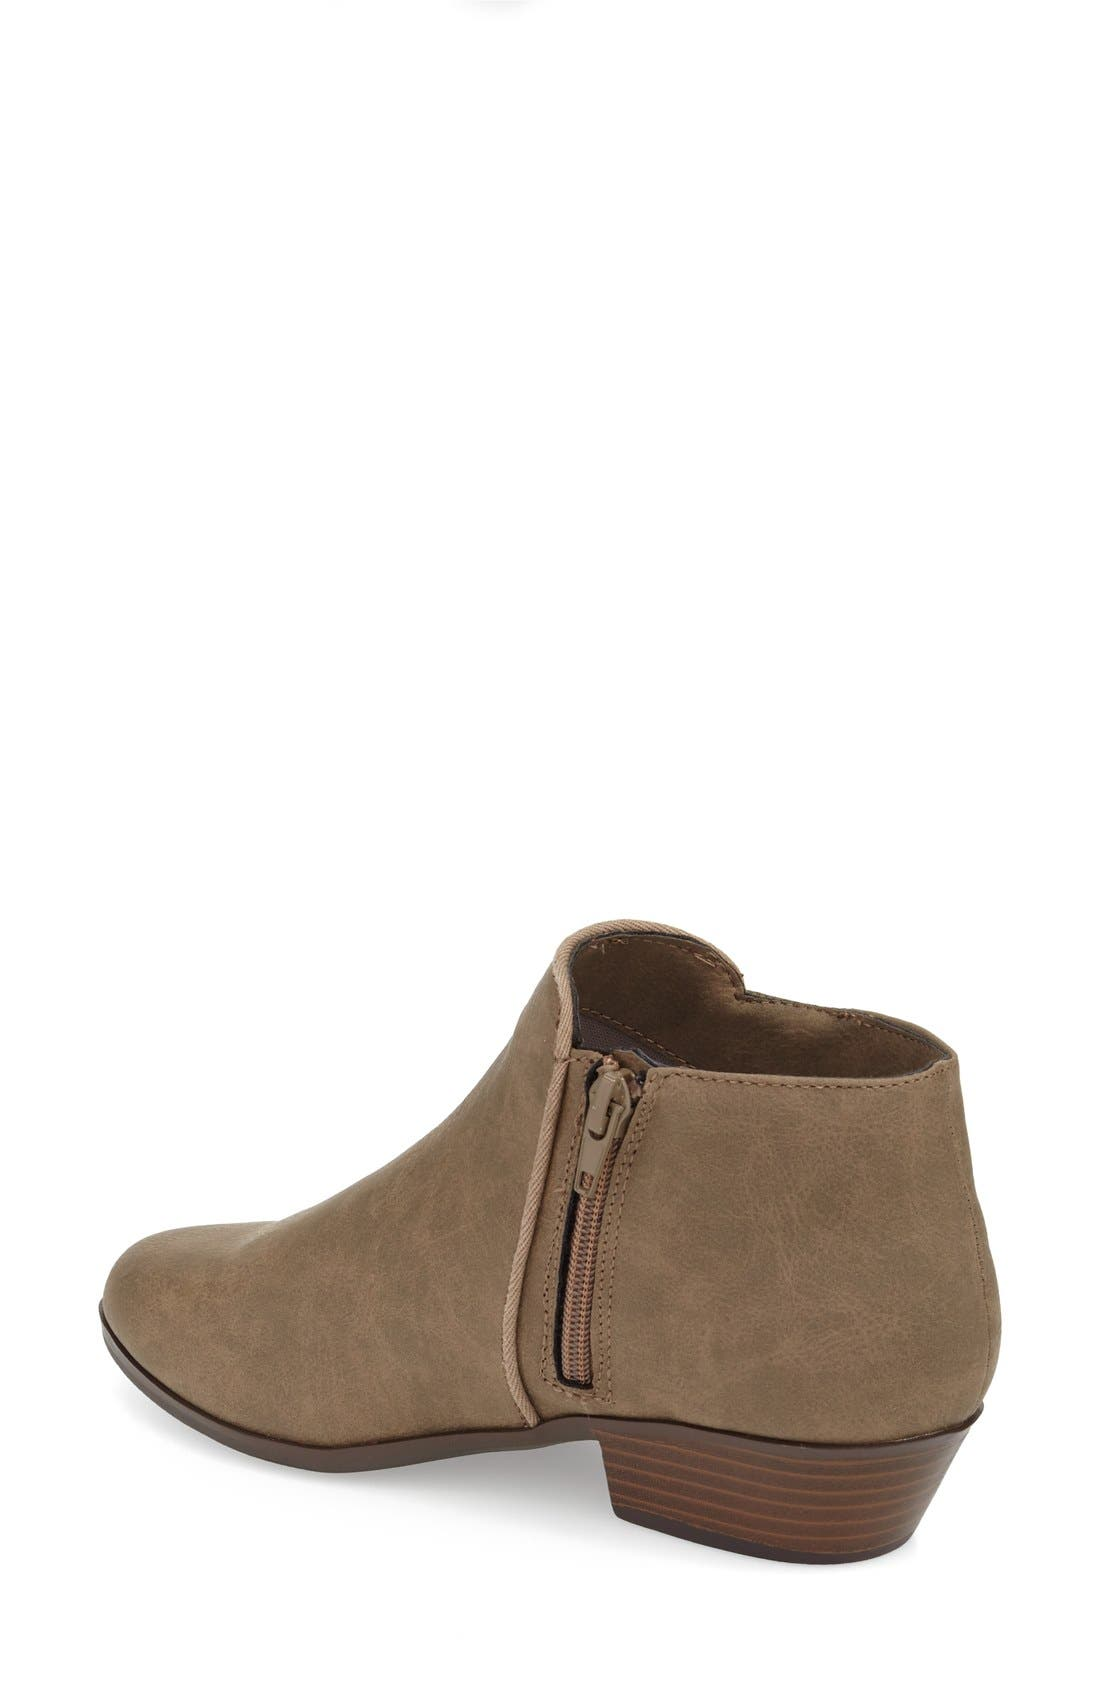 Alternate Image 2  - Sam Edelman 'Petty' Bootie (Walker, Toddler, Little Kid & Big Kid)